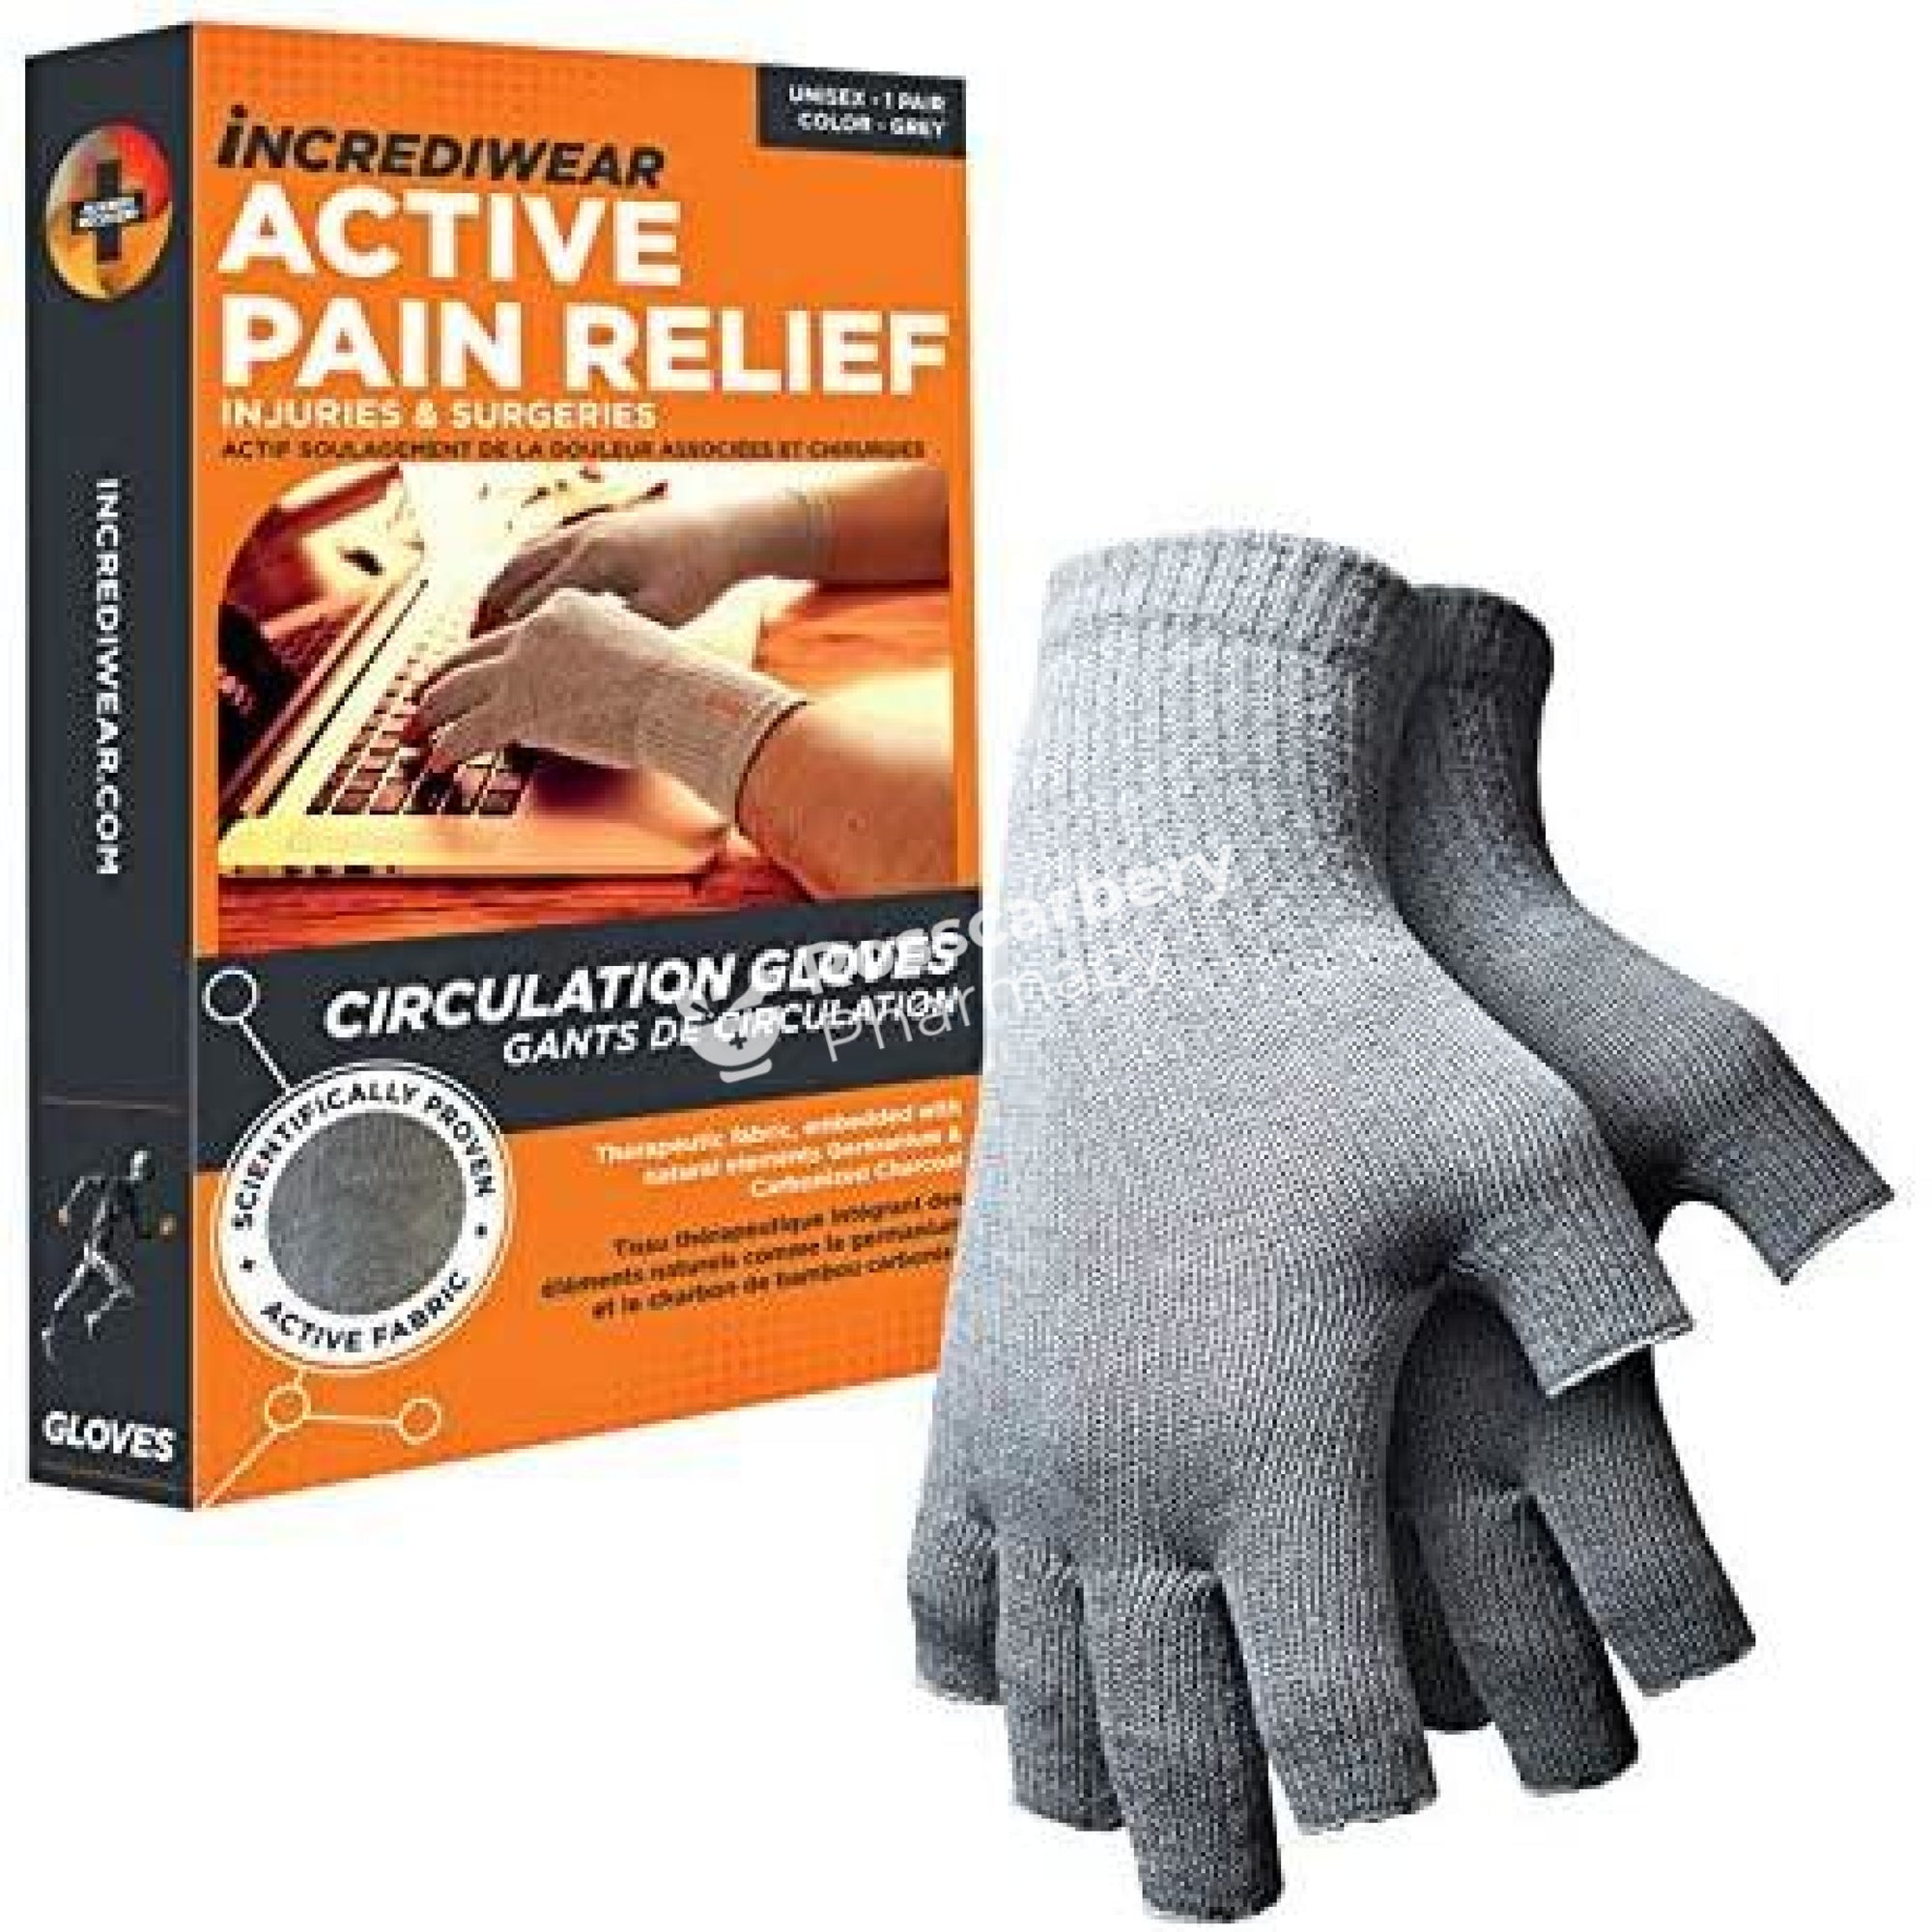 Incrediwear Active Pain Relief Circulation Gloves - Grey Supports & Compression Hoisery